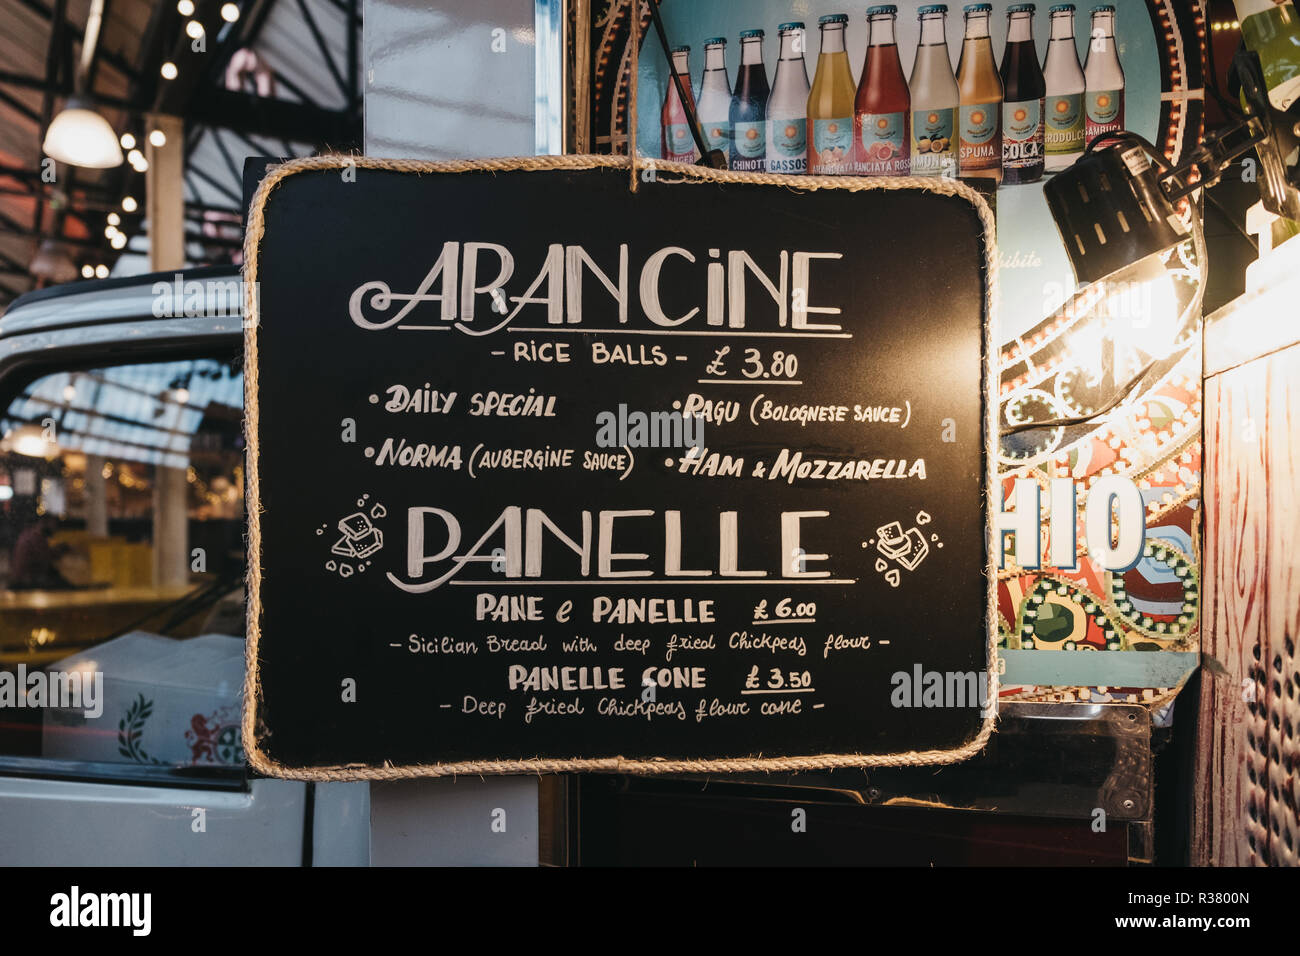 London, UK - November 2, 2018: Food menu at Little Sicily stand in Mercato Metropolitano, the first sustainable community market in London focused on  - Stock Image